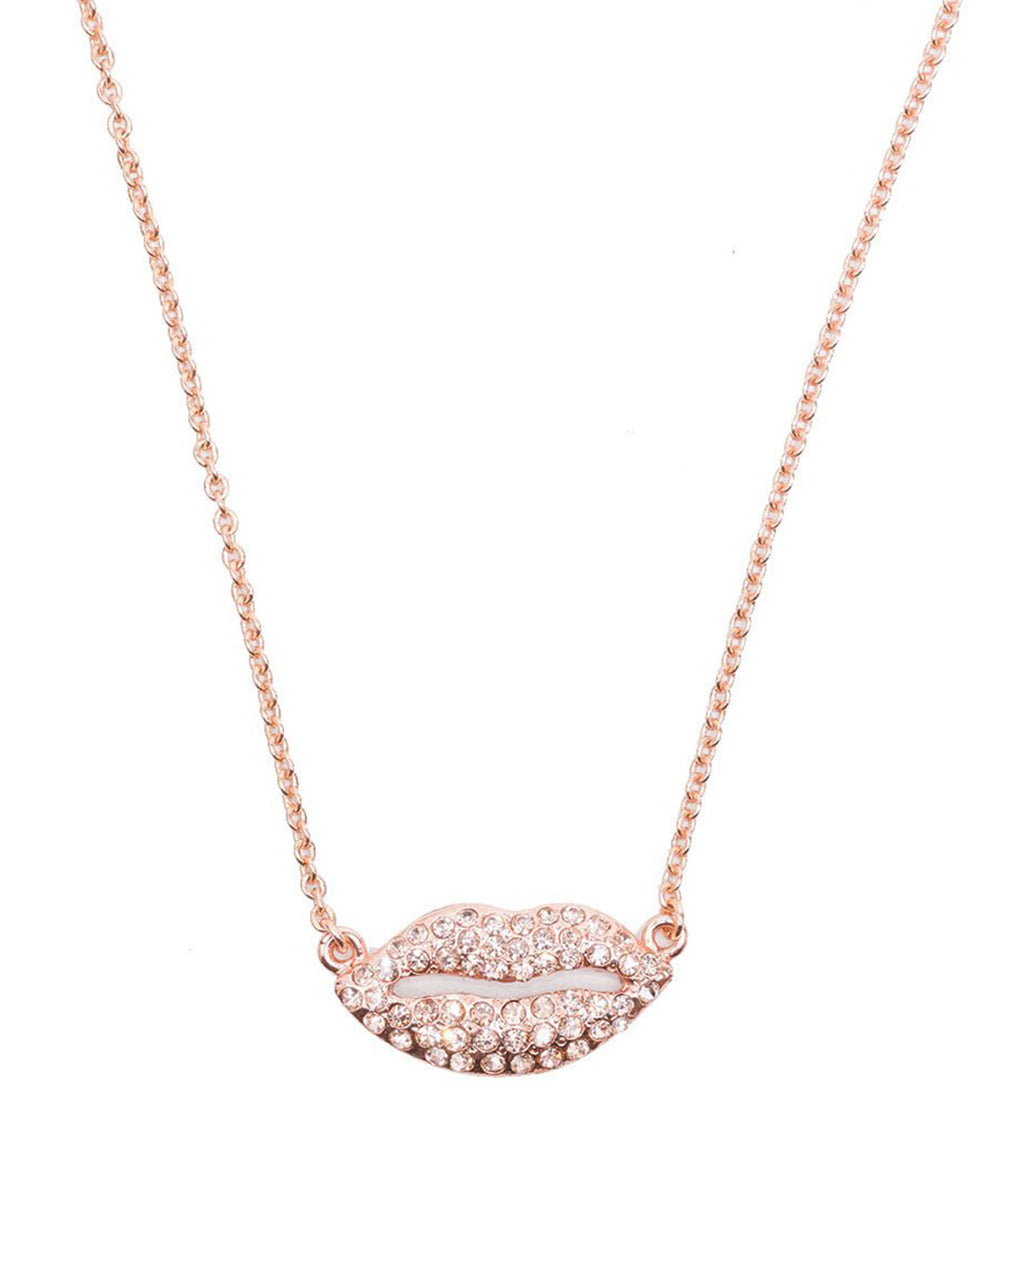 Izoa rose gold lips pendant necklace